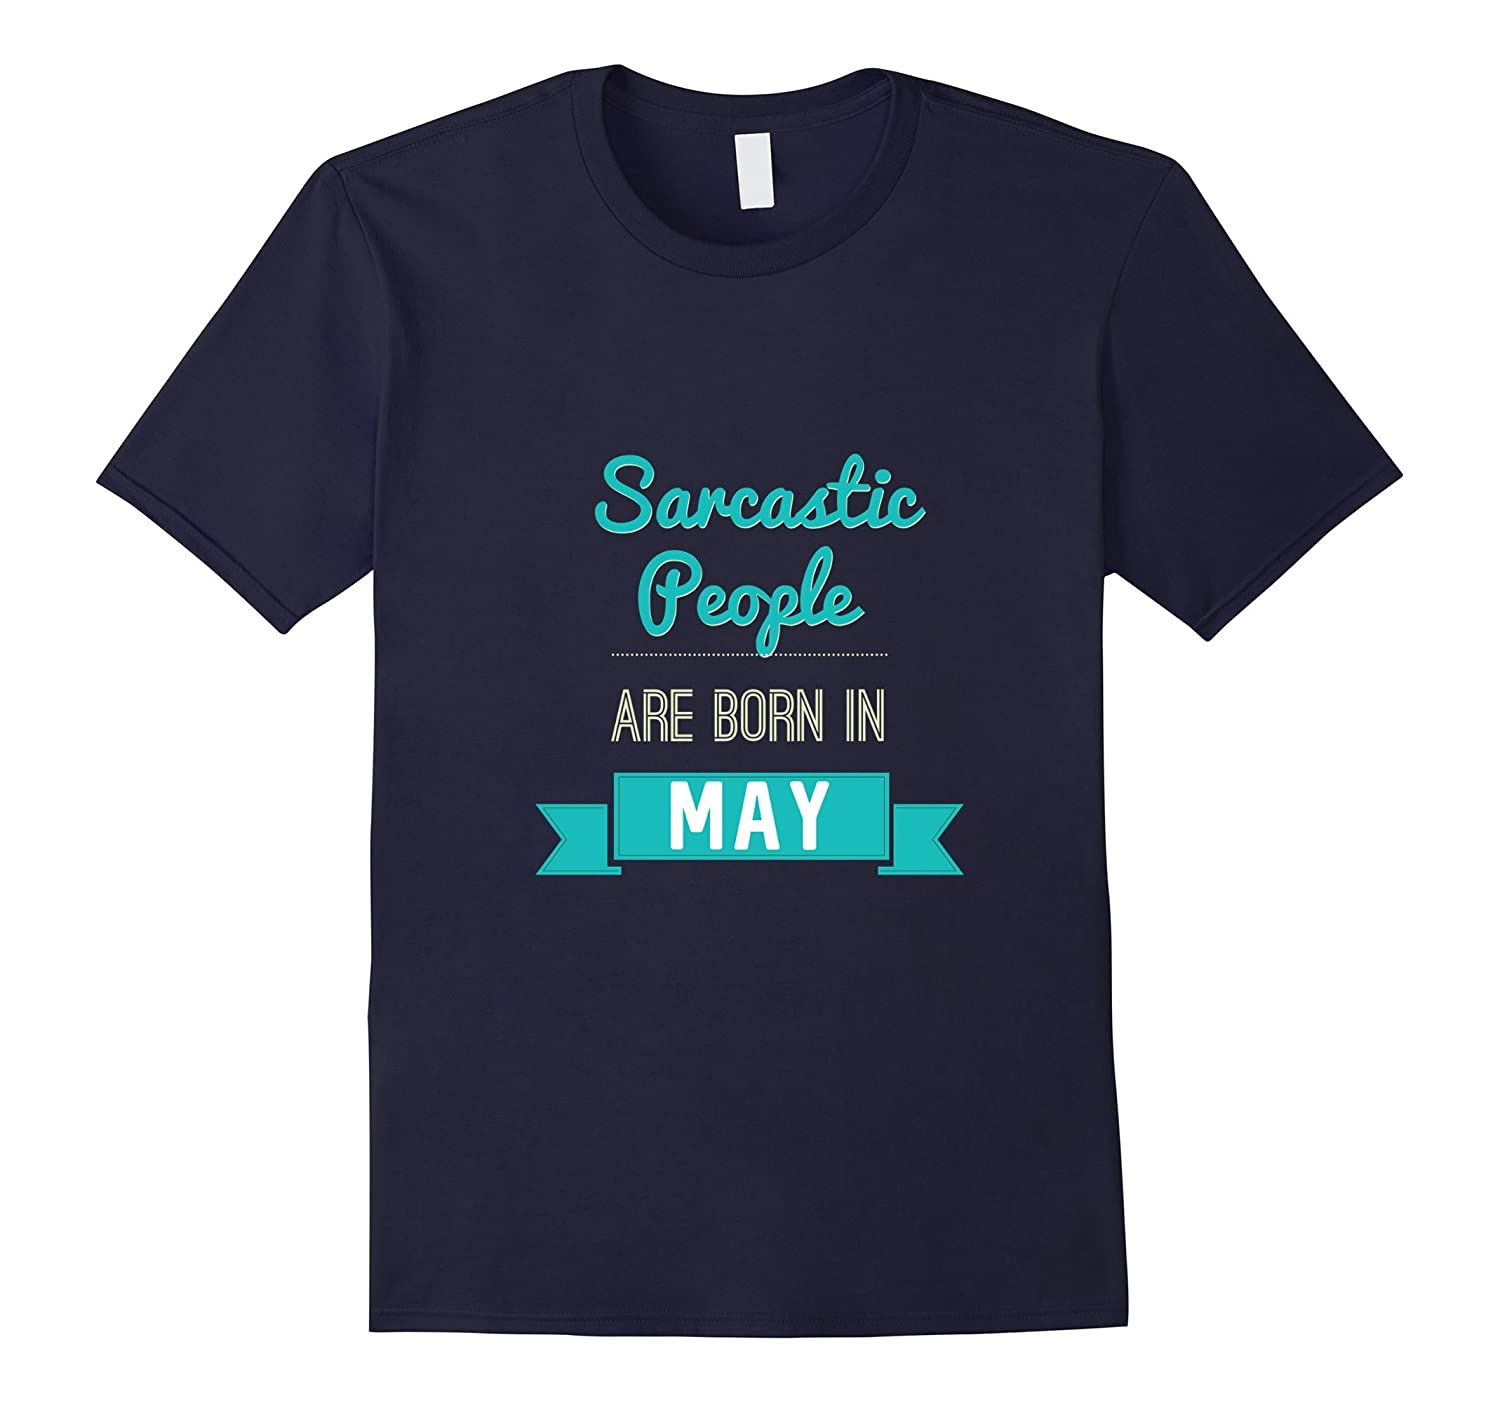 Sarcastic People Are Born In May - Funny Humorous T-Shirt-TD